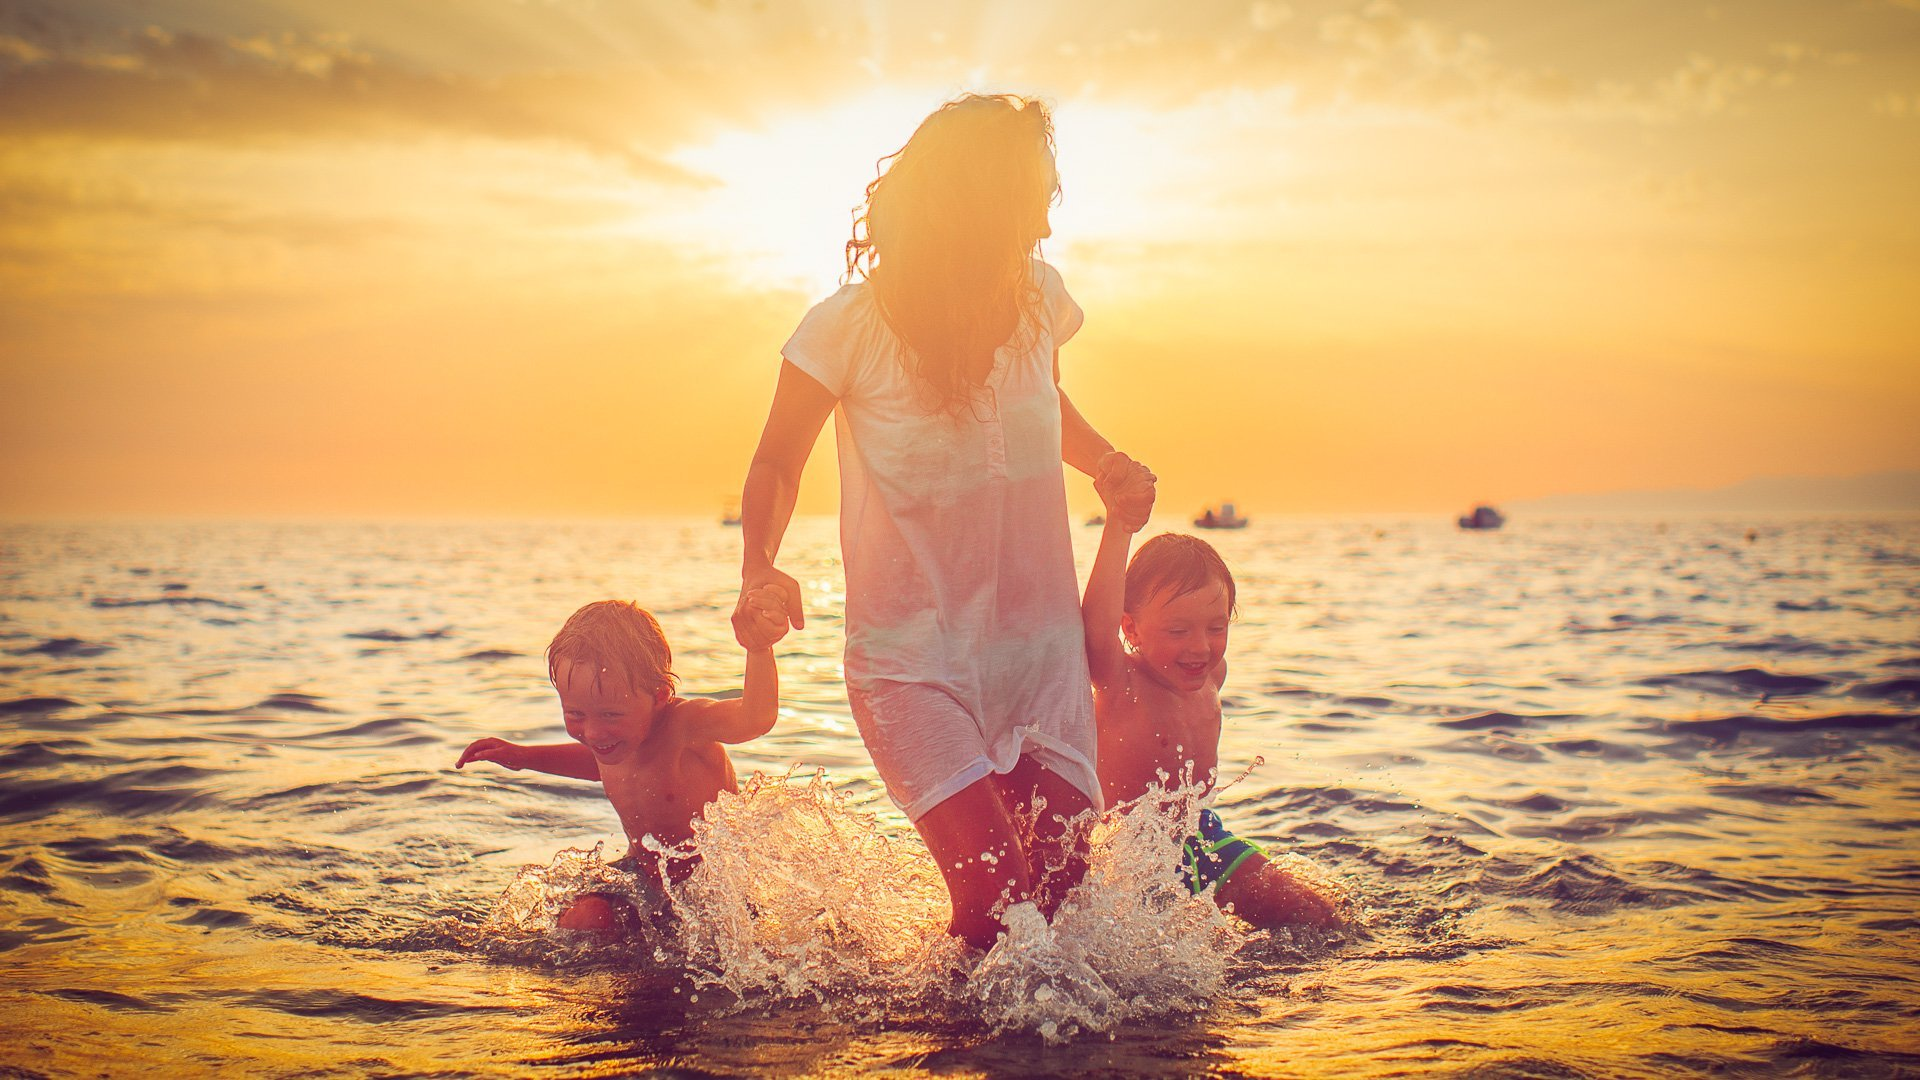 Covid-19 summer travel and money-saving tips to know